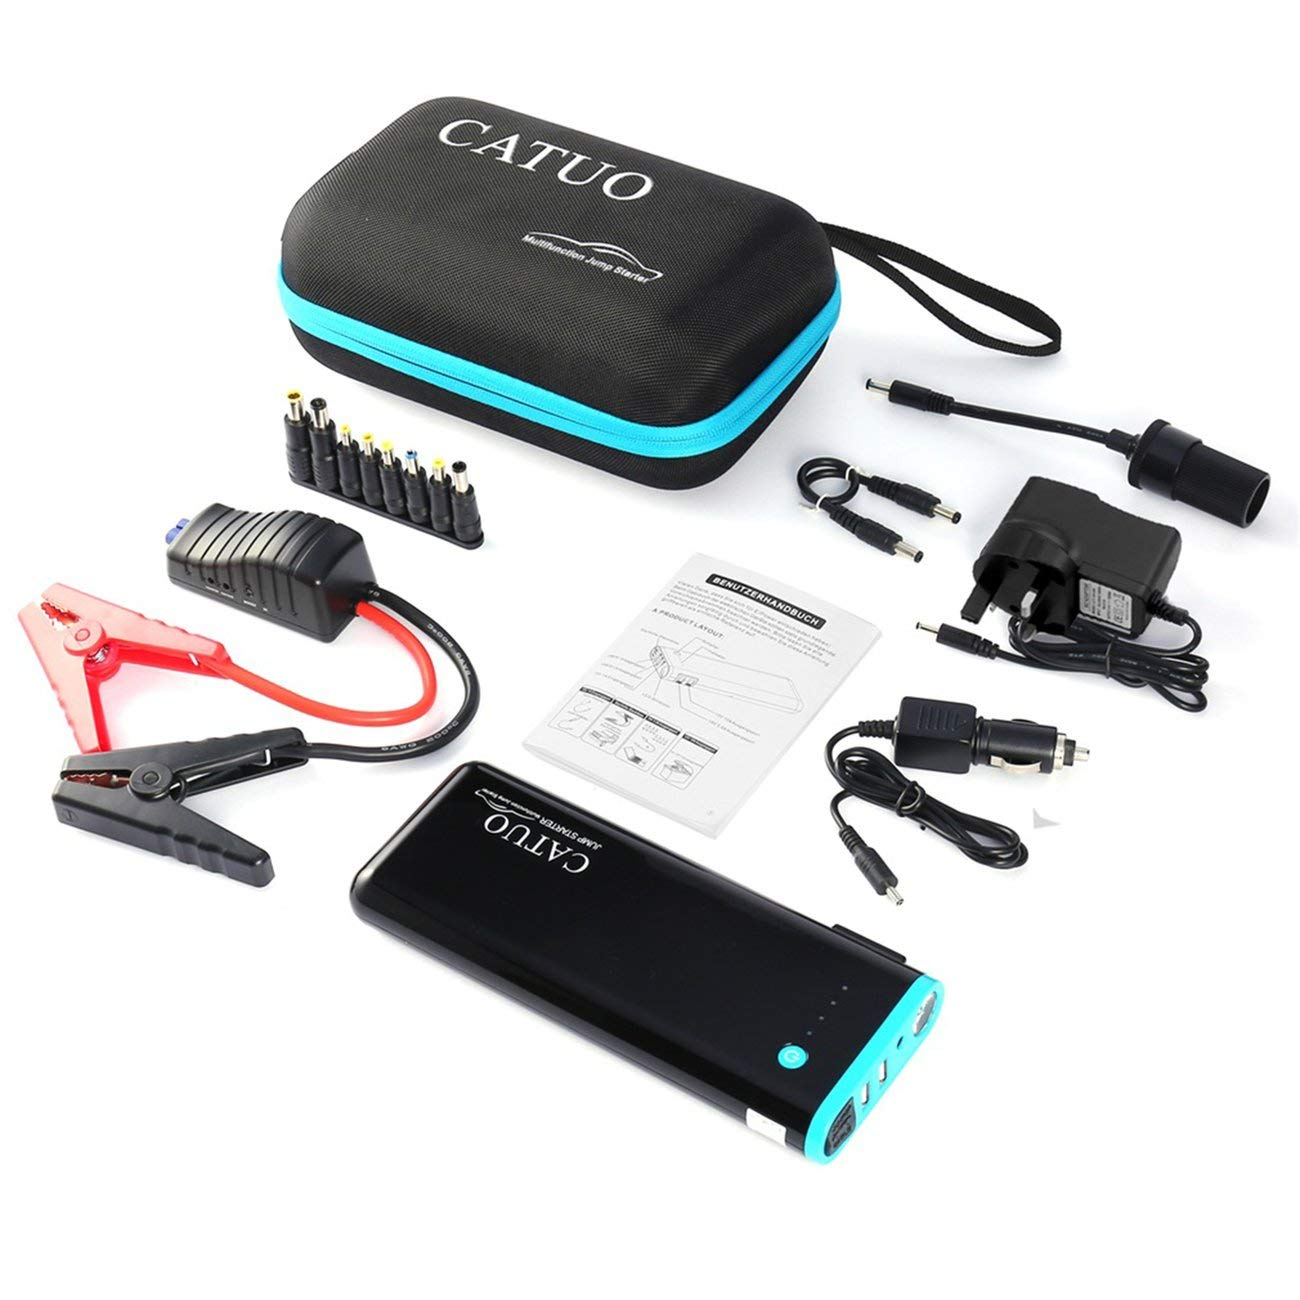 LasVogos CATUO 20000mAh Car Jump Starter Battery Booster with USB Power Bank by LasVogos (Image #1)